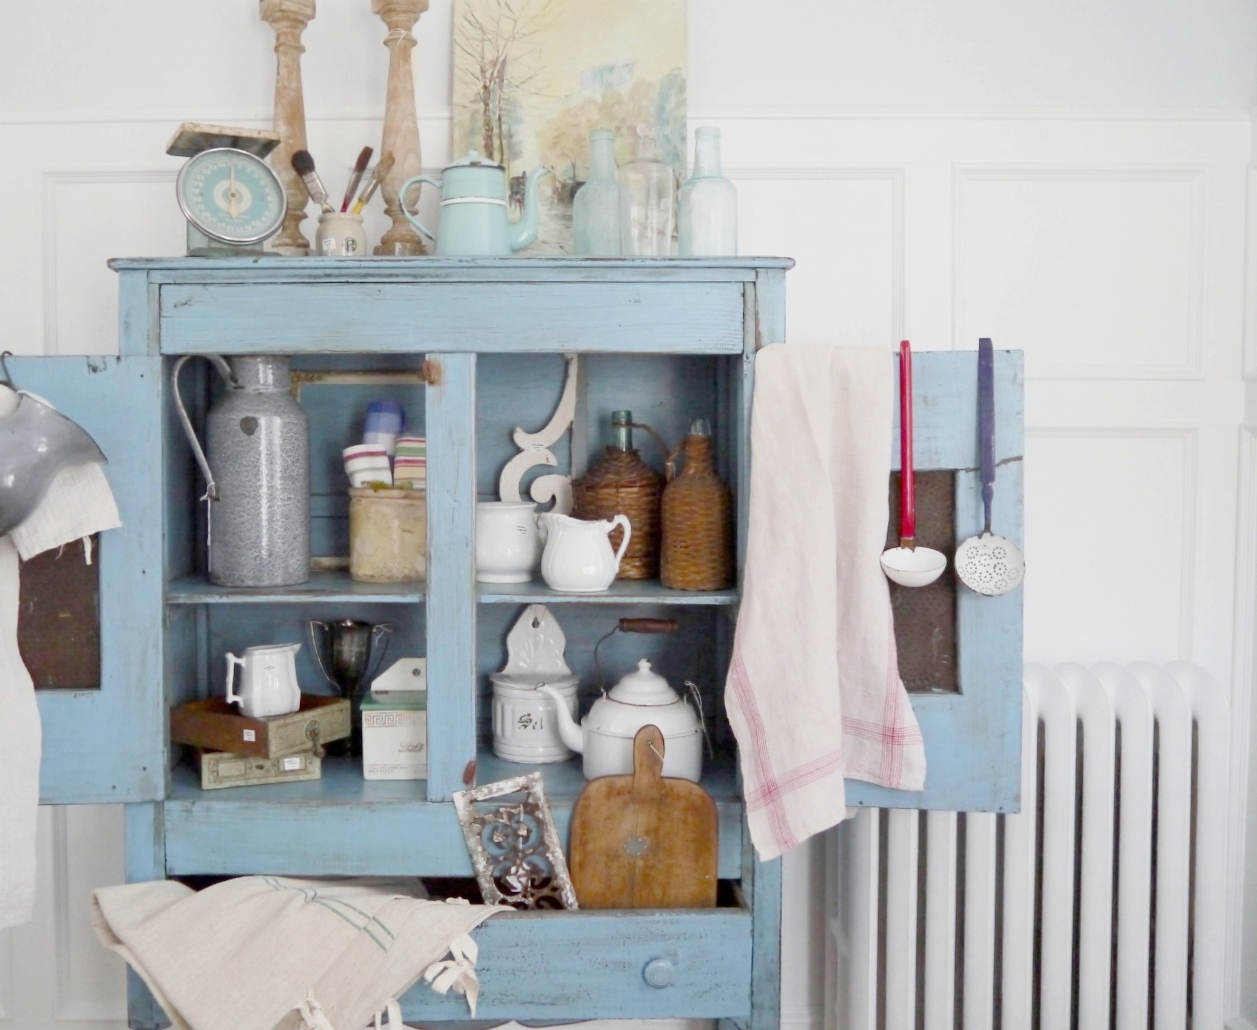 Visit the Vintage Collective showroom in Haddonfield, NJ to shop your favorite vintage home decor and accessories. You'll find hand-selected and one-of-a-kind pieces ranging from dishware, linens, furnitures, architecturals, vintage accessories and more. The best home vintage shop in Haddonfield, NJ.